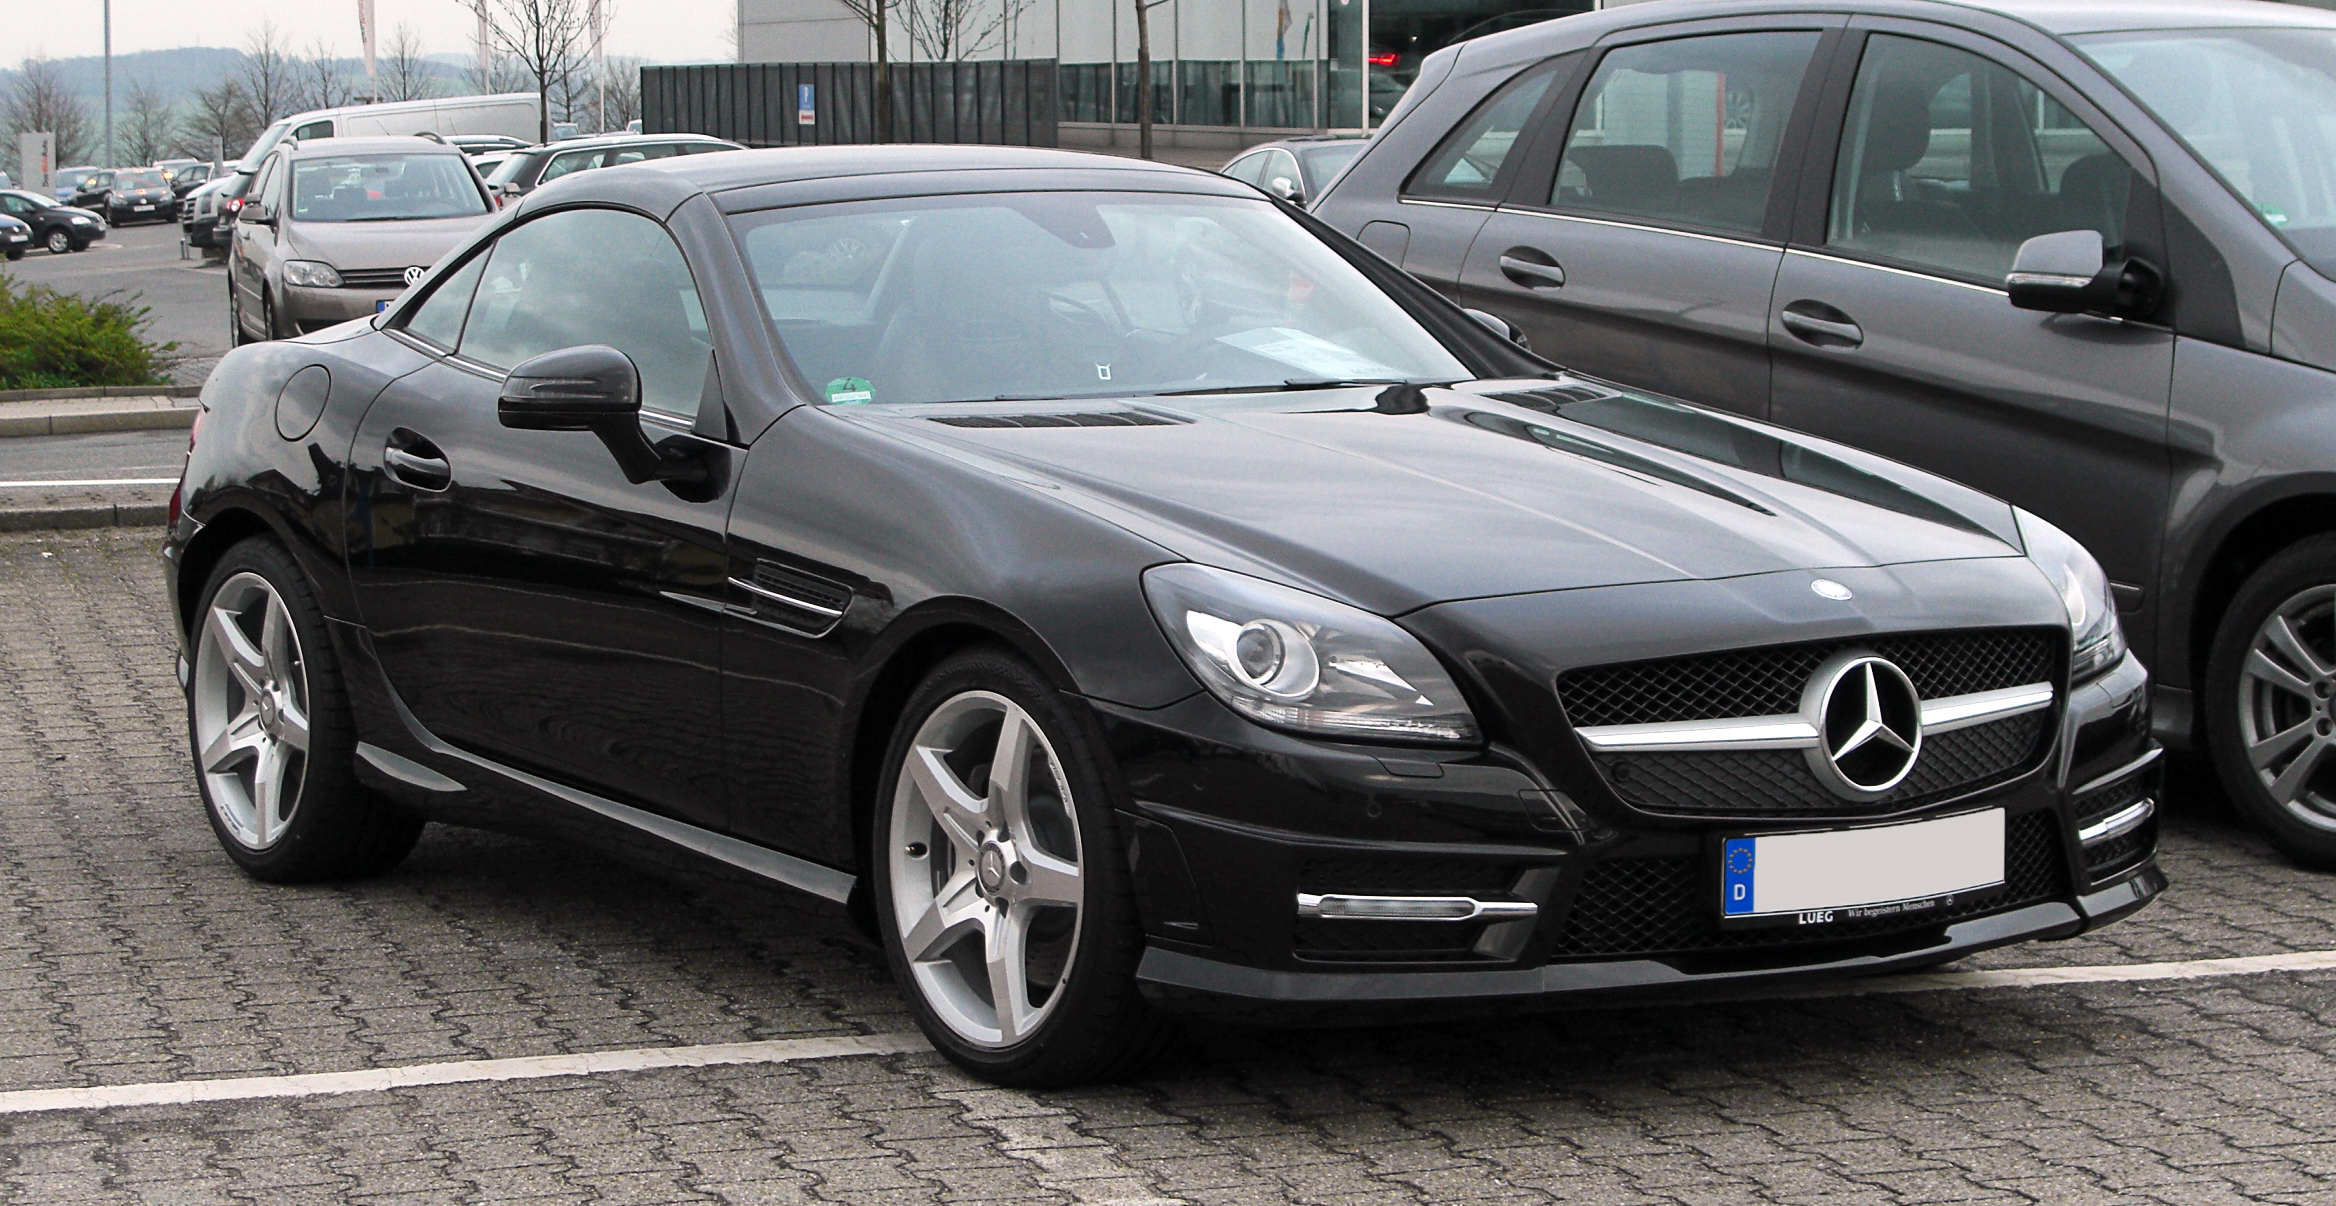 datei mercedes benz slk 200 blueefficiency sport paket amg r 172 frontansicht 1 april 2011. Black Bedroom Furniture Sets. Home Design Ideas